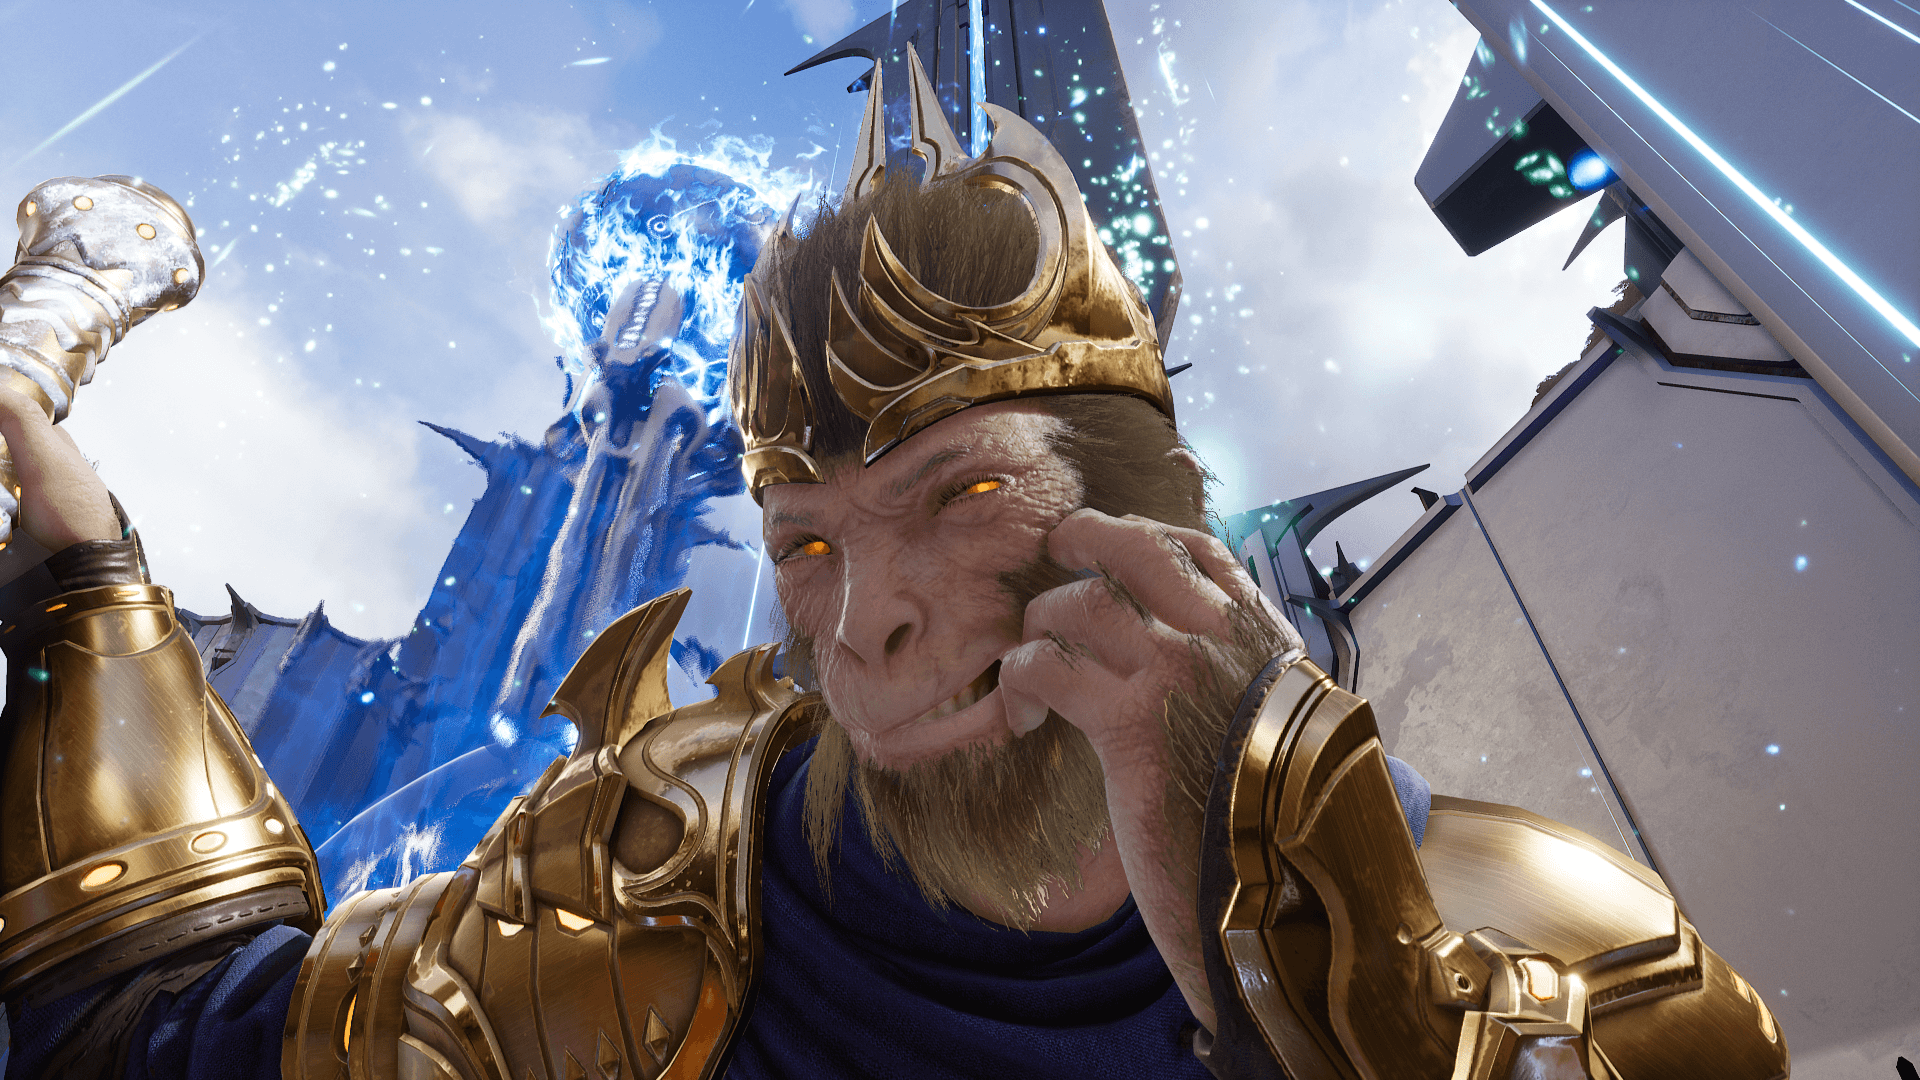 Getting up close with Royal Wukong screenshots!